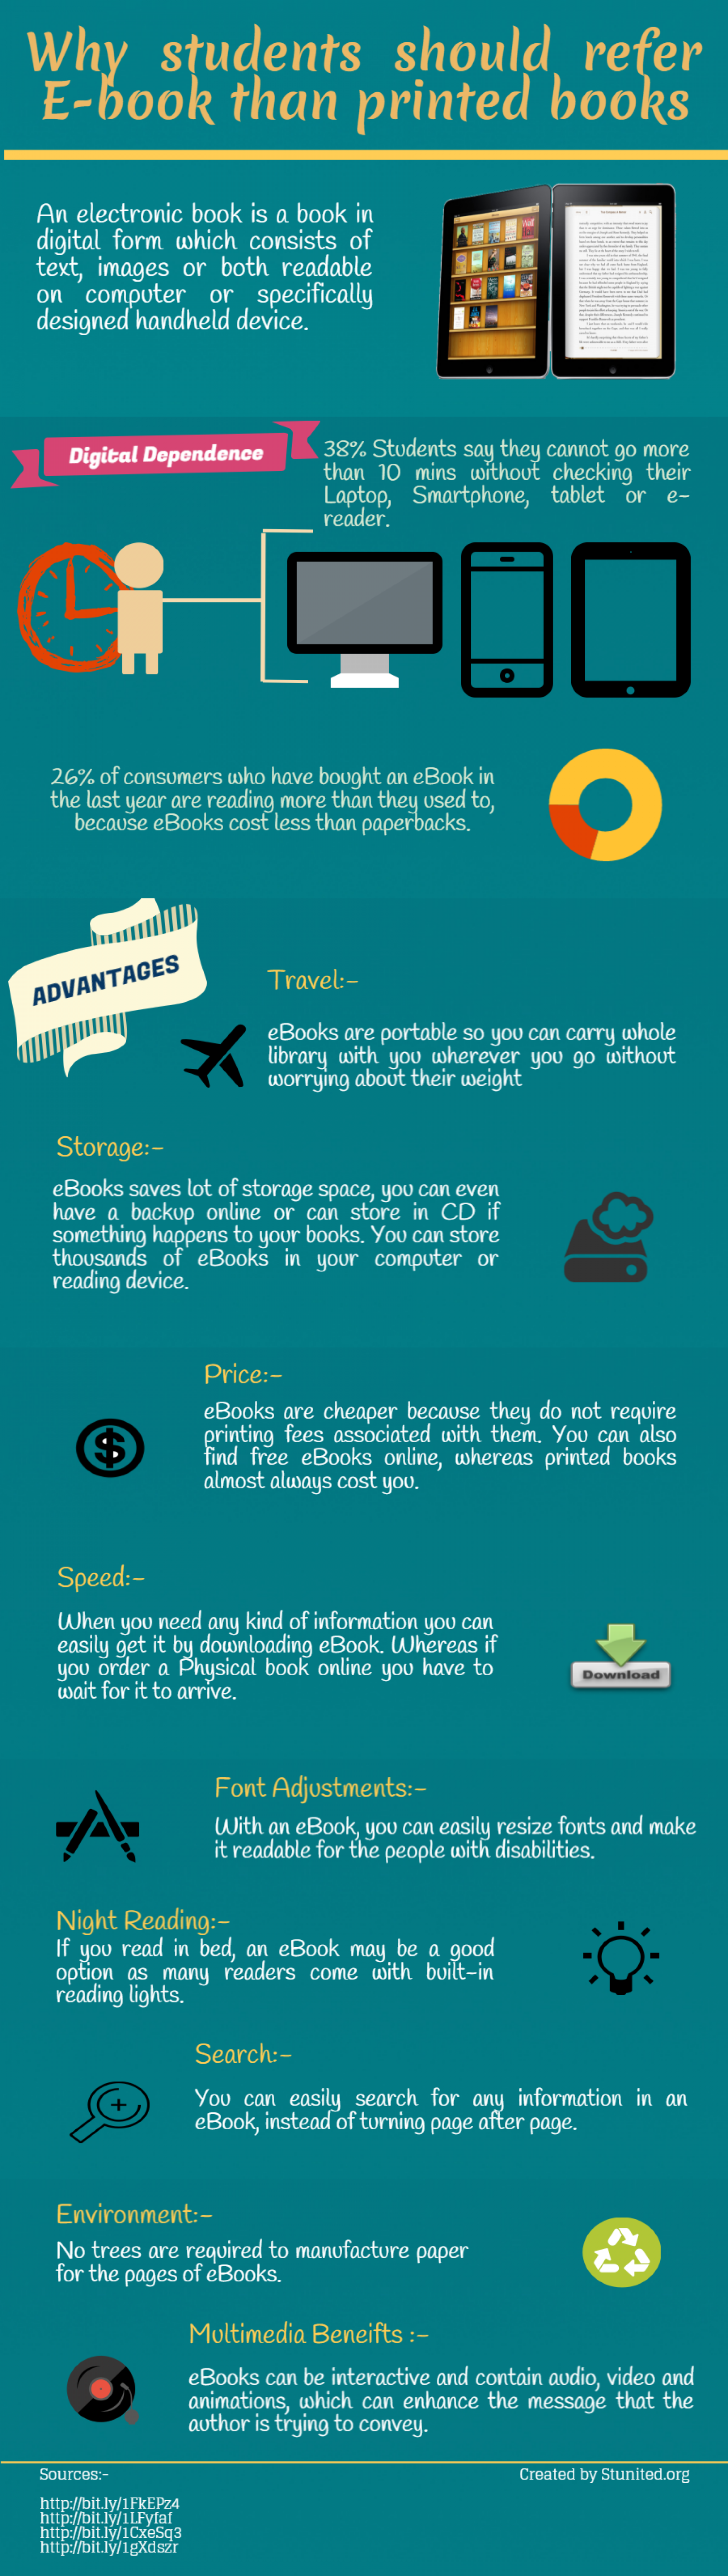 E-books or Printed Textbooks: Which is better? and Why? Infographic